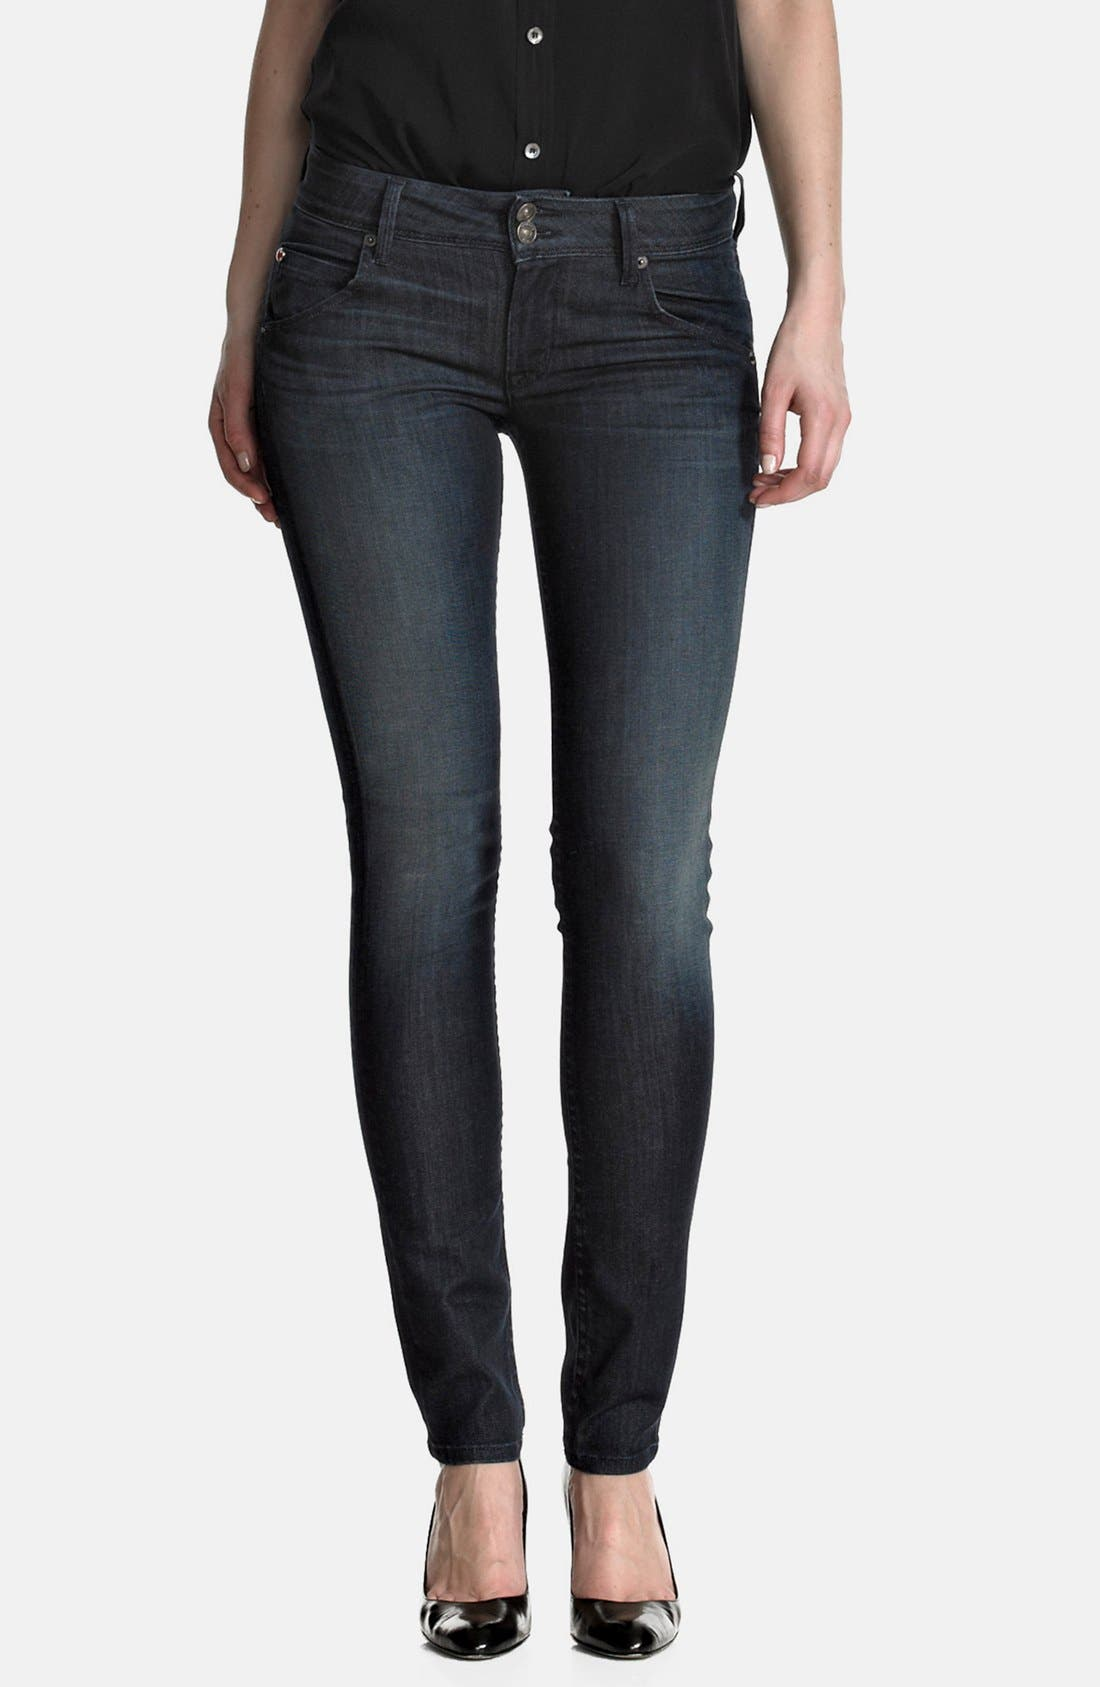 Main Image - Hudson Jeans 'Collin' Skinny Jeans (Siouxsie)